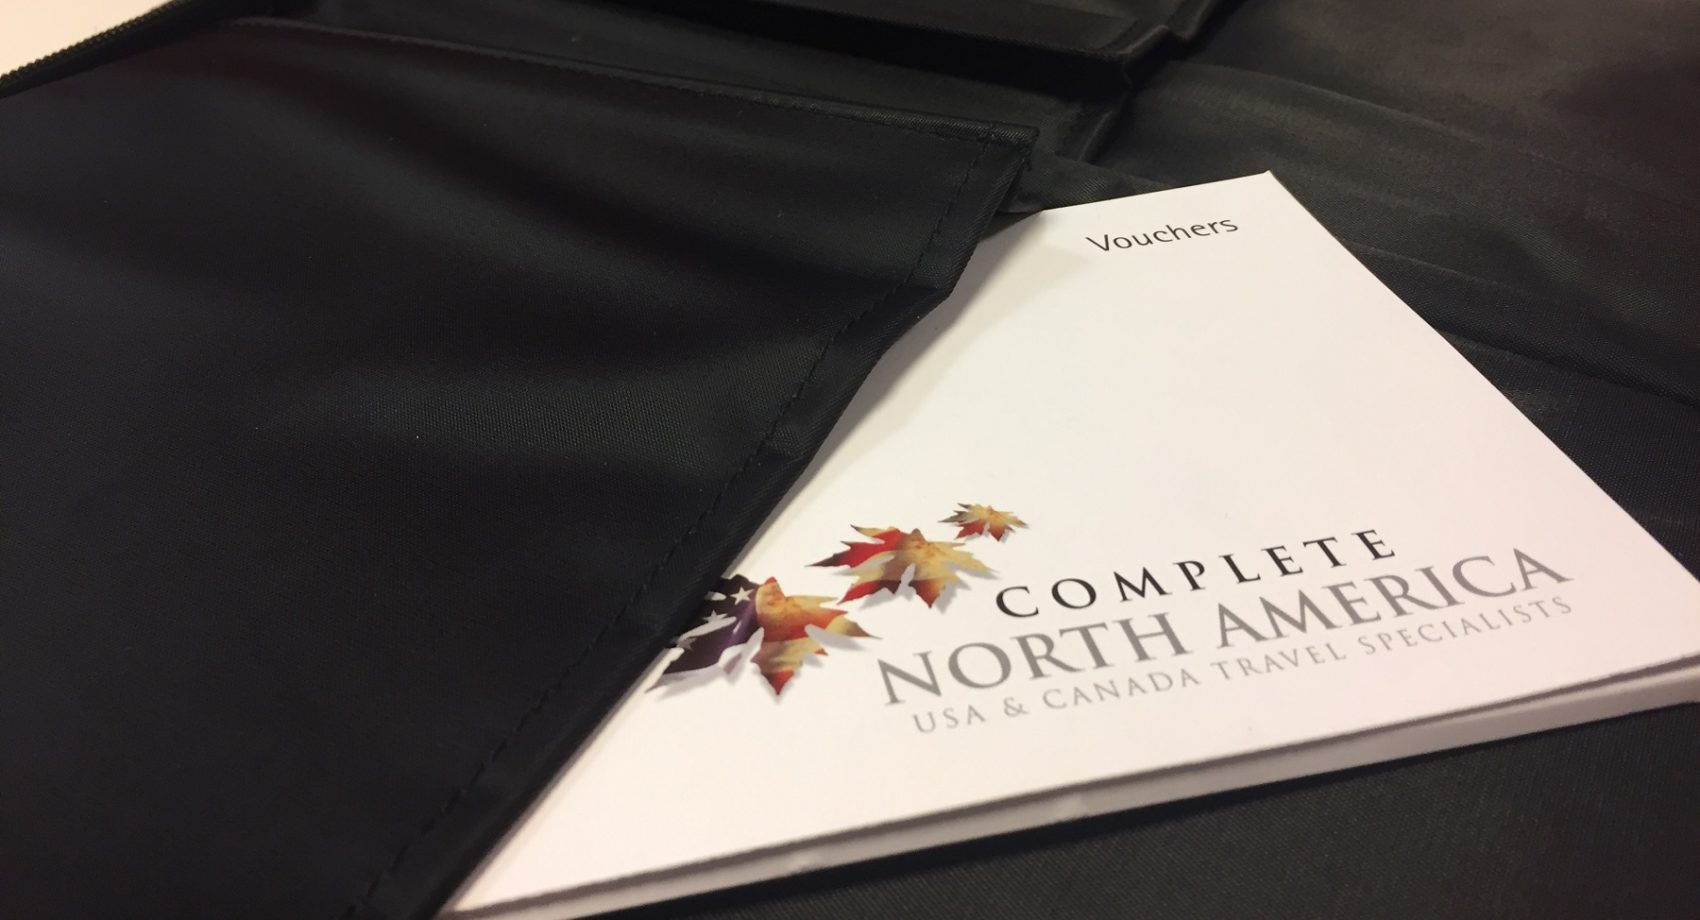 Complete North America voucher booklet